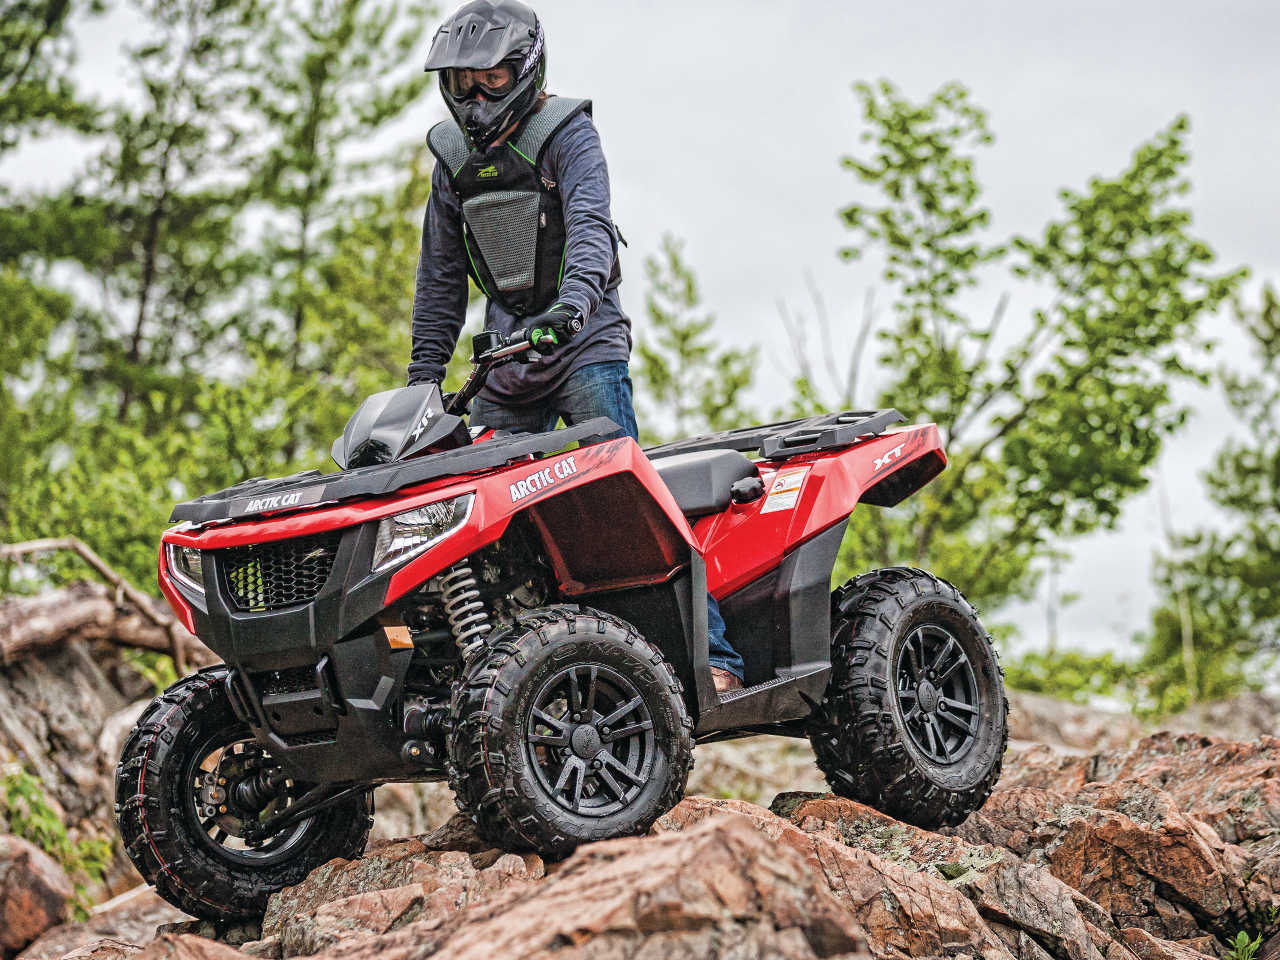 New Model Preview 15 For 2015 Atv Illustrated